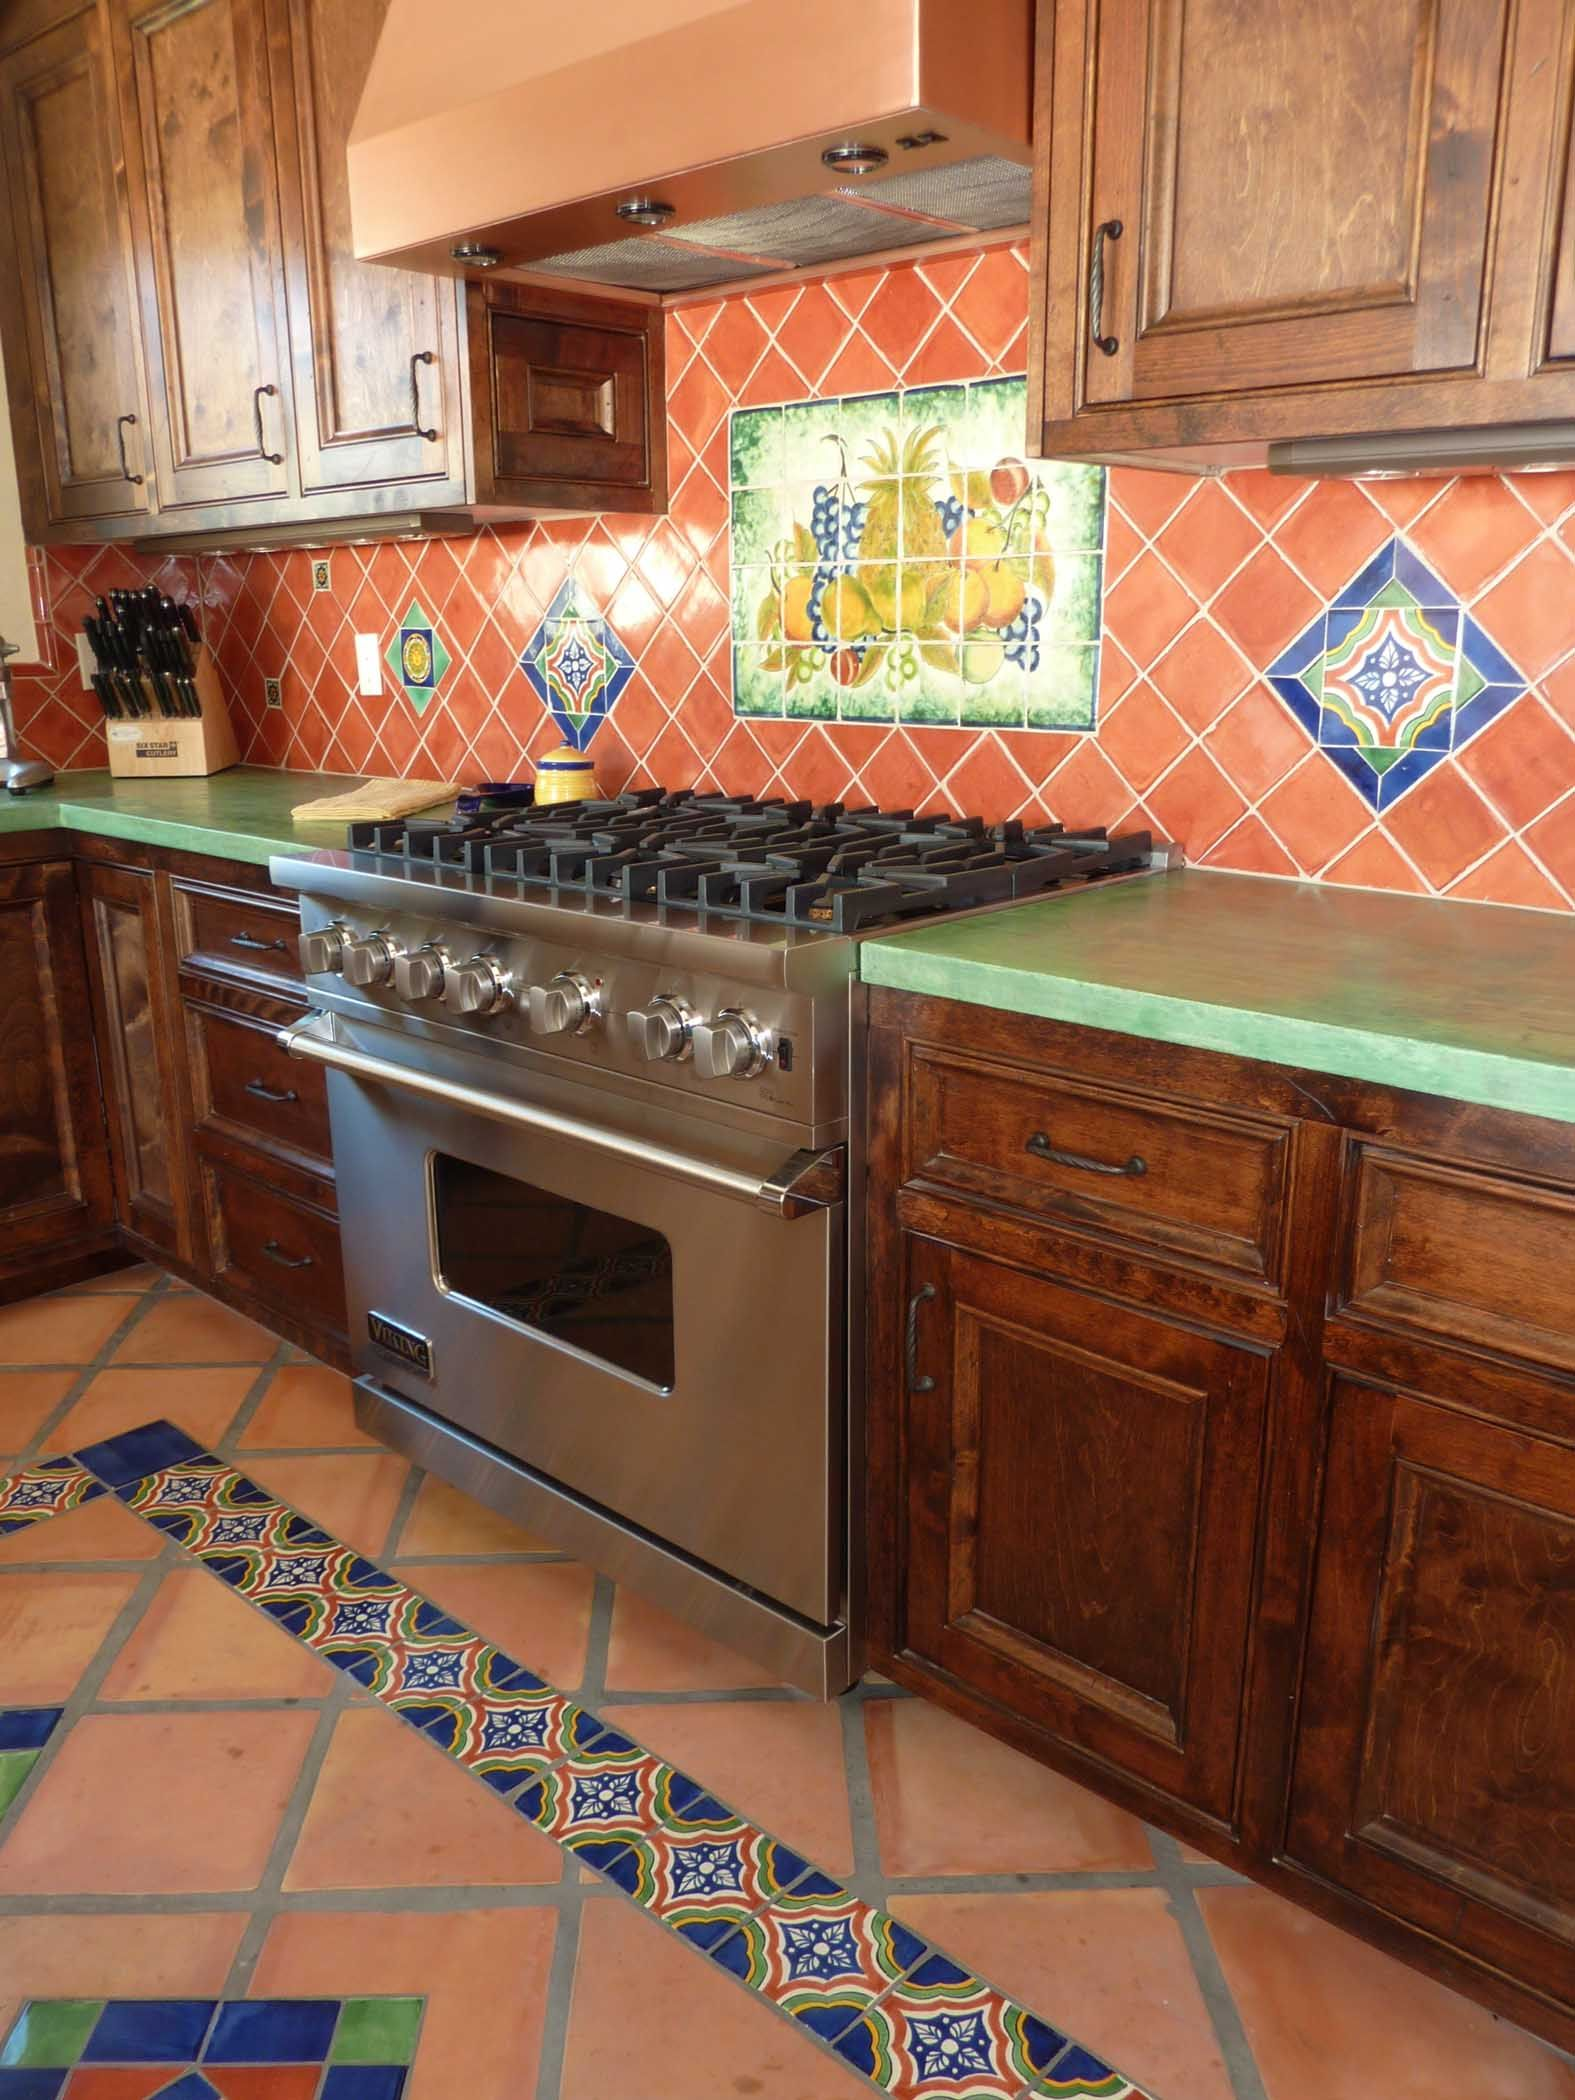 Spanish Tile Countertops Kitchen Remodel Using Mexican Tiles By Kristiblackdesigns